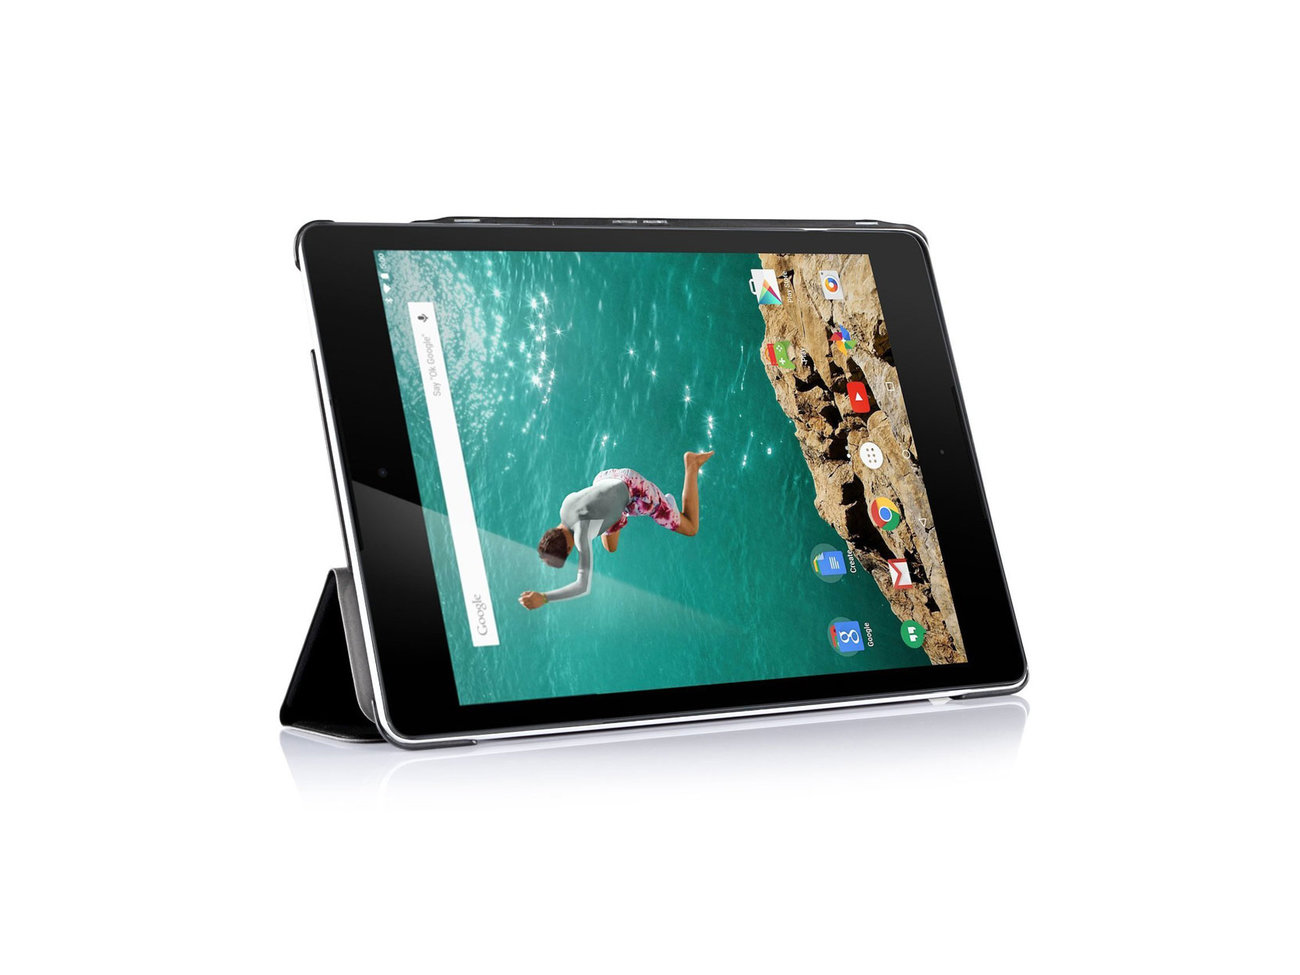 Tech-nexus-tablet-9-GG1115.jpg